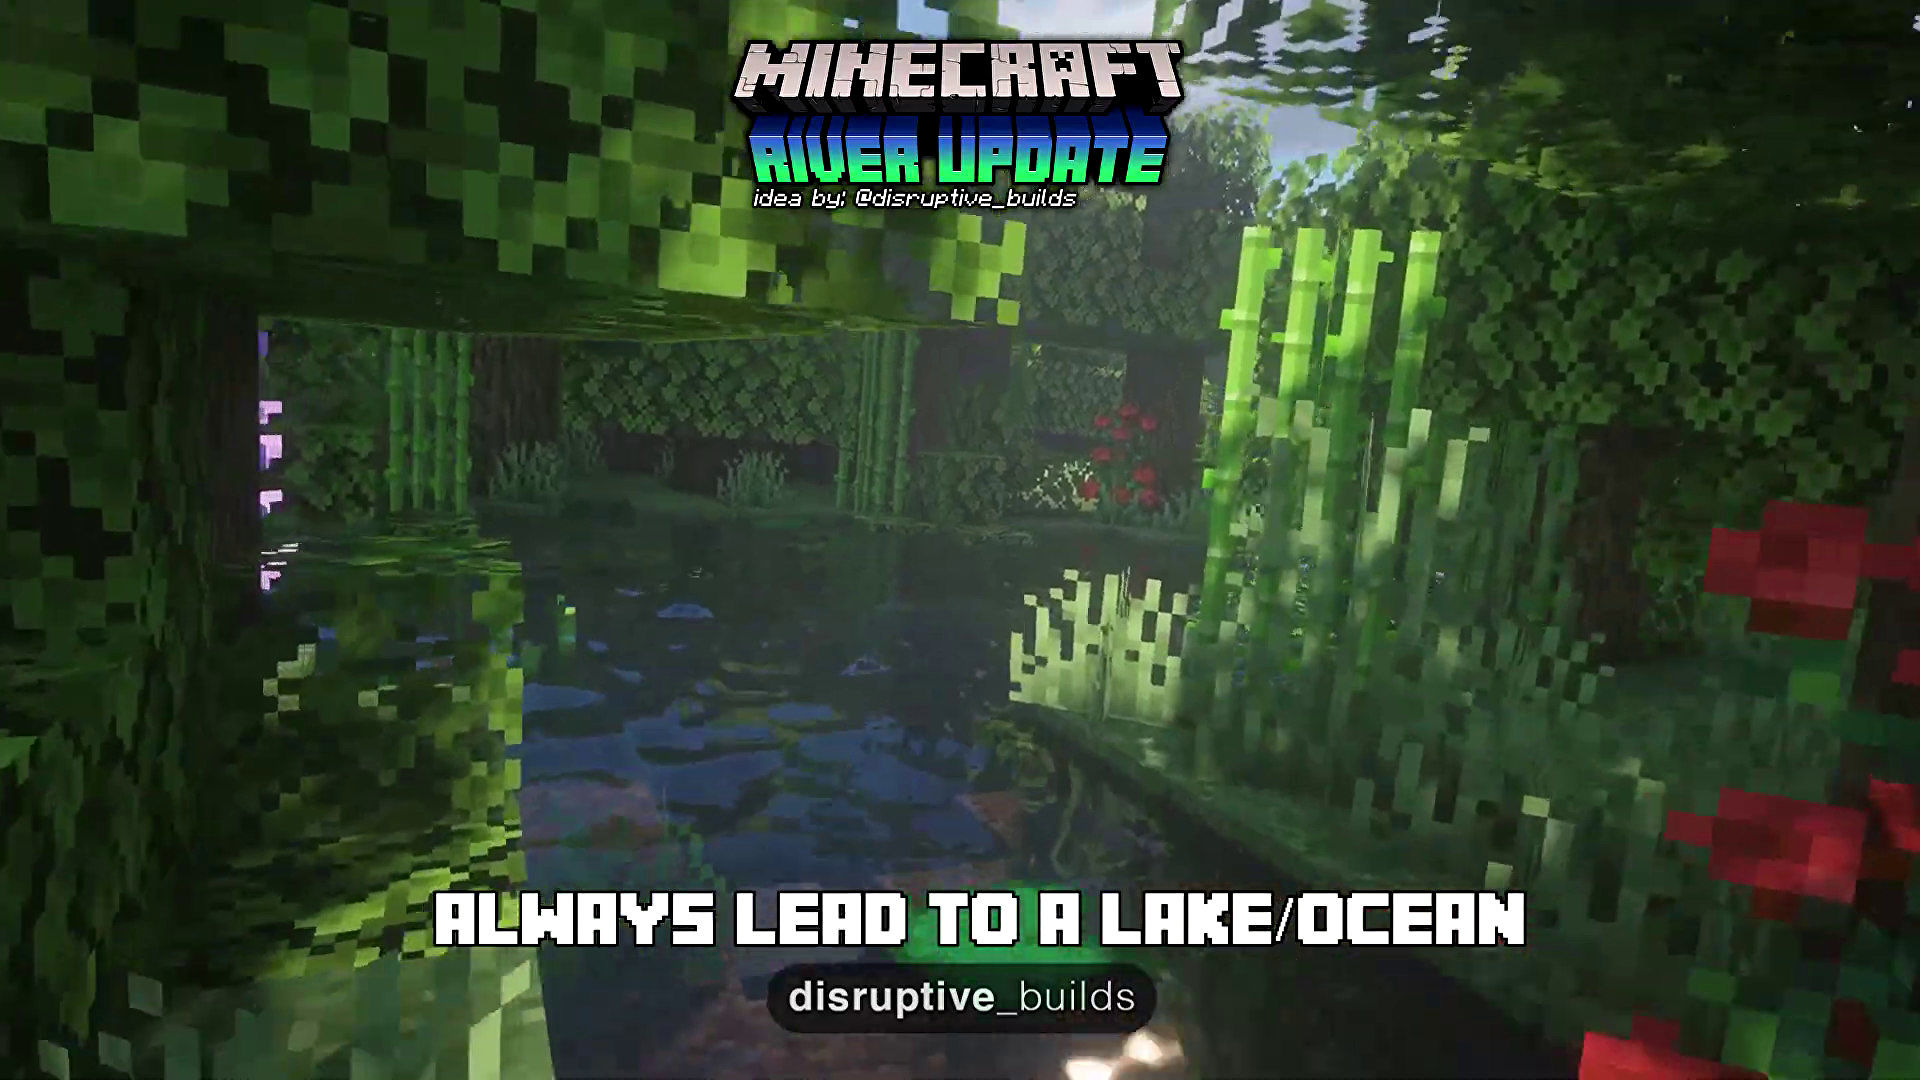 This Minecraft fan's concept video for a 'River Update' is cool